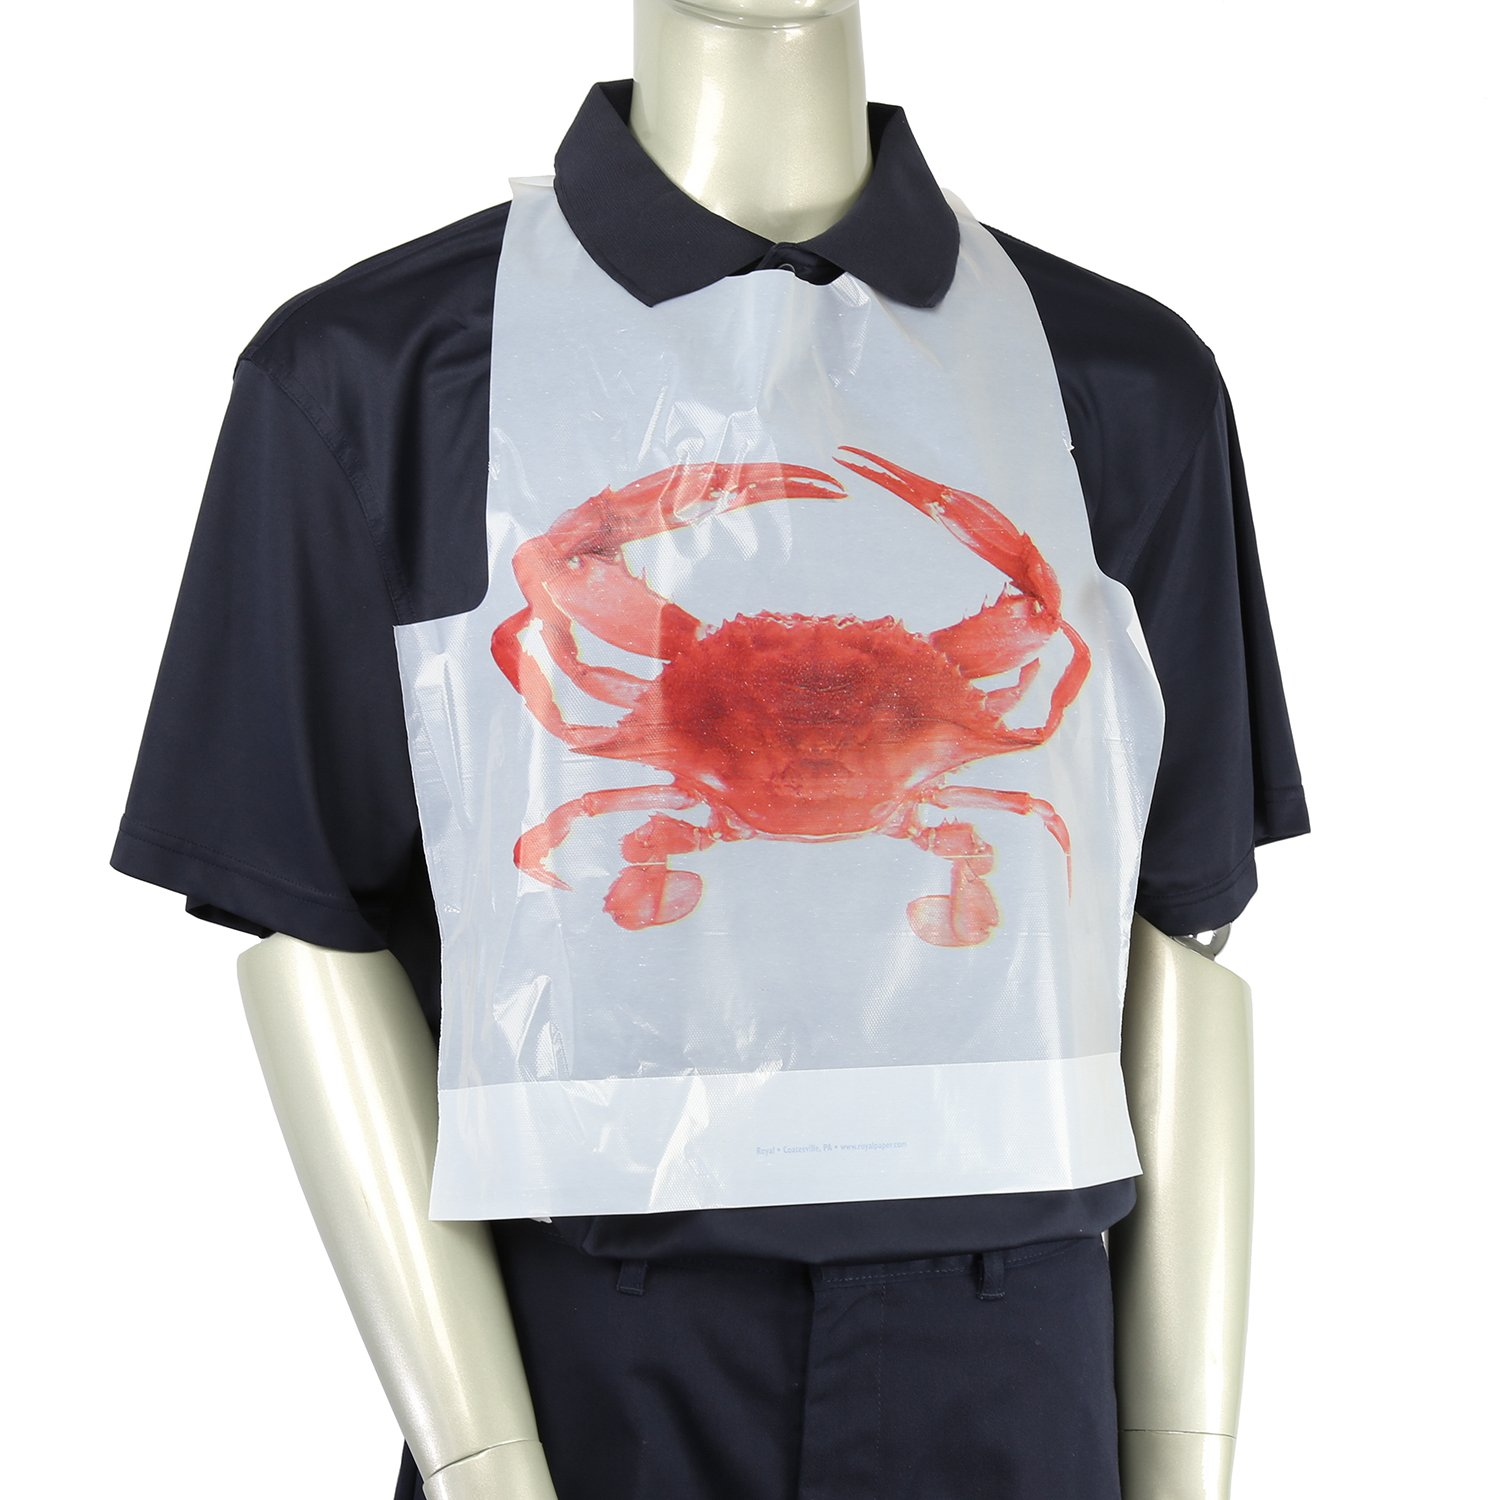 Royal Adult Poly Bibs with Crab Design, Package of 500 by Royal (Image #1)